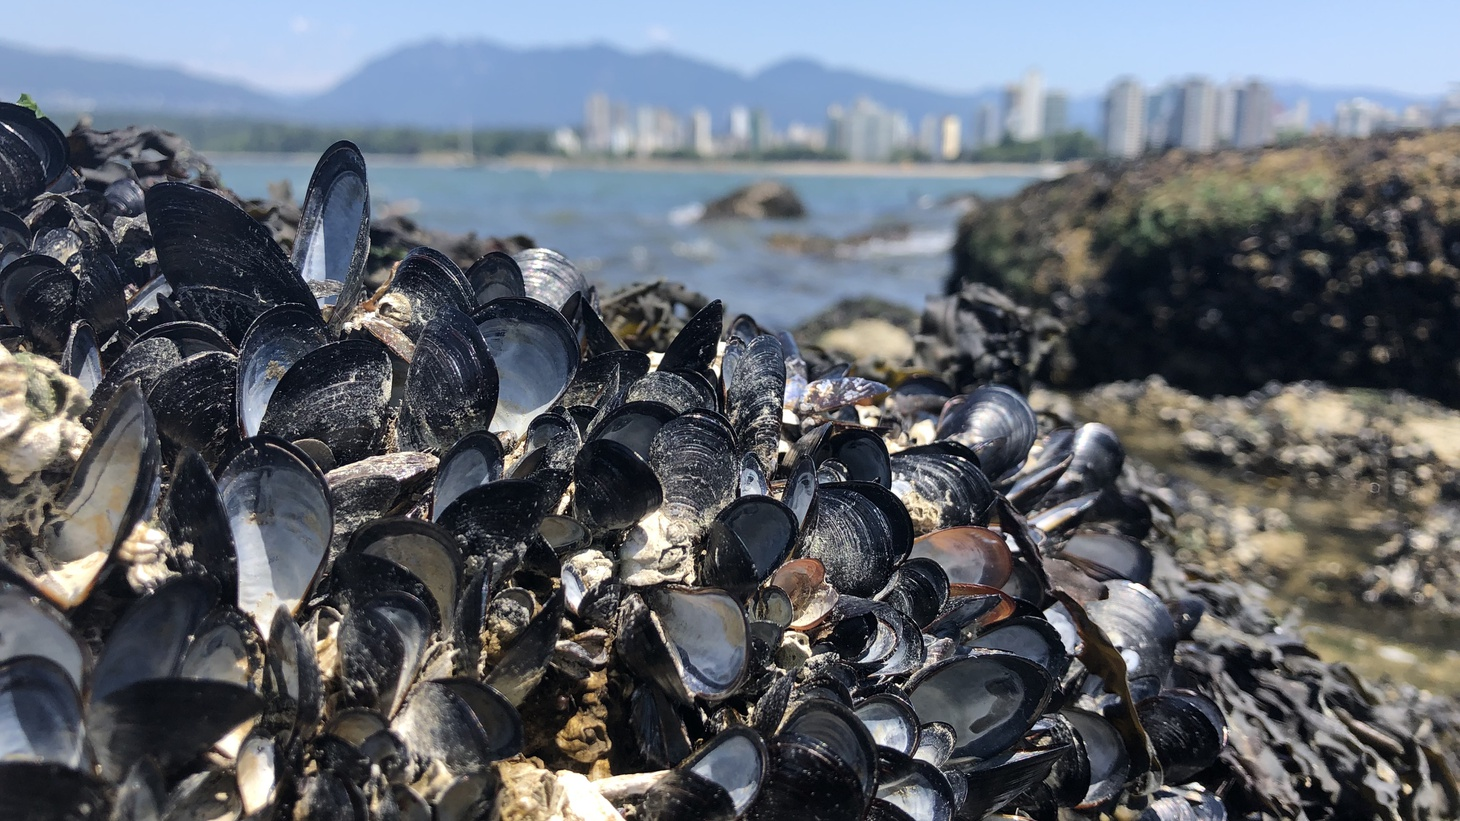 Christopher Harley says he saw a million dead mussels on a tennis court-sized shore of Vancouver.